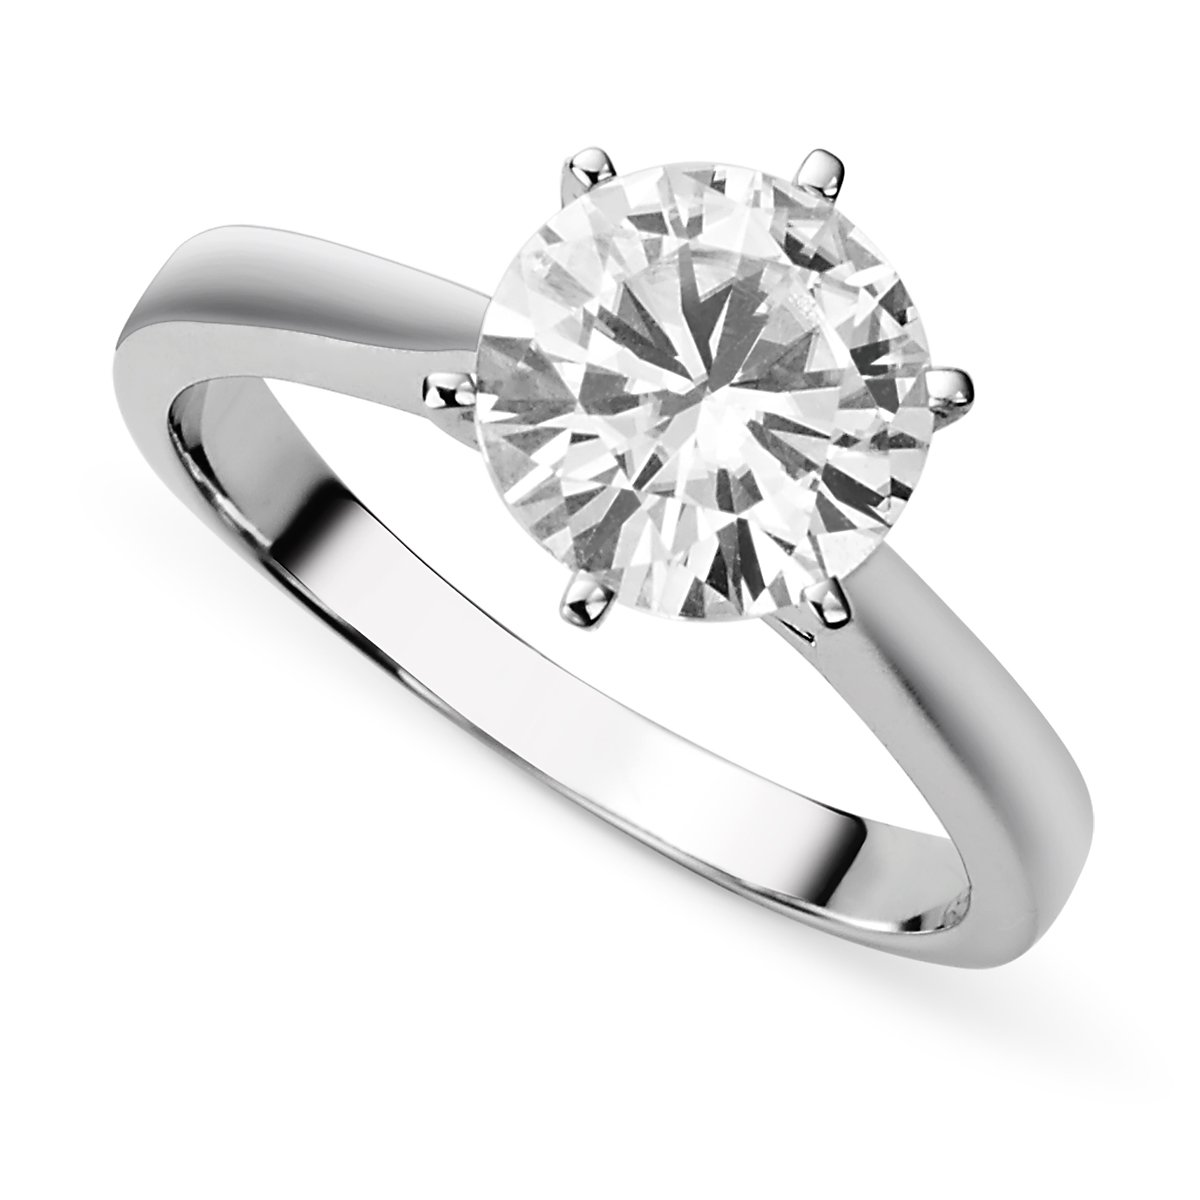 14K White Gold Moissanite by Charles & Colvard 9.5mm Round Engagement Ring-size 6, 3.10ct DEW